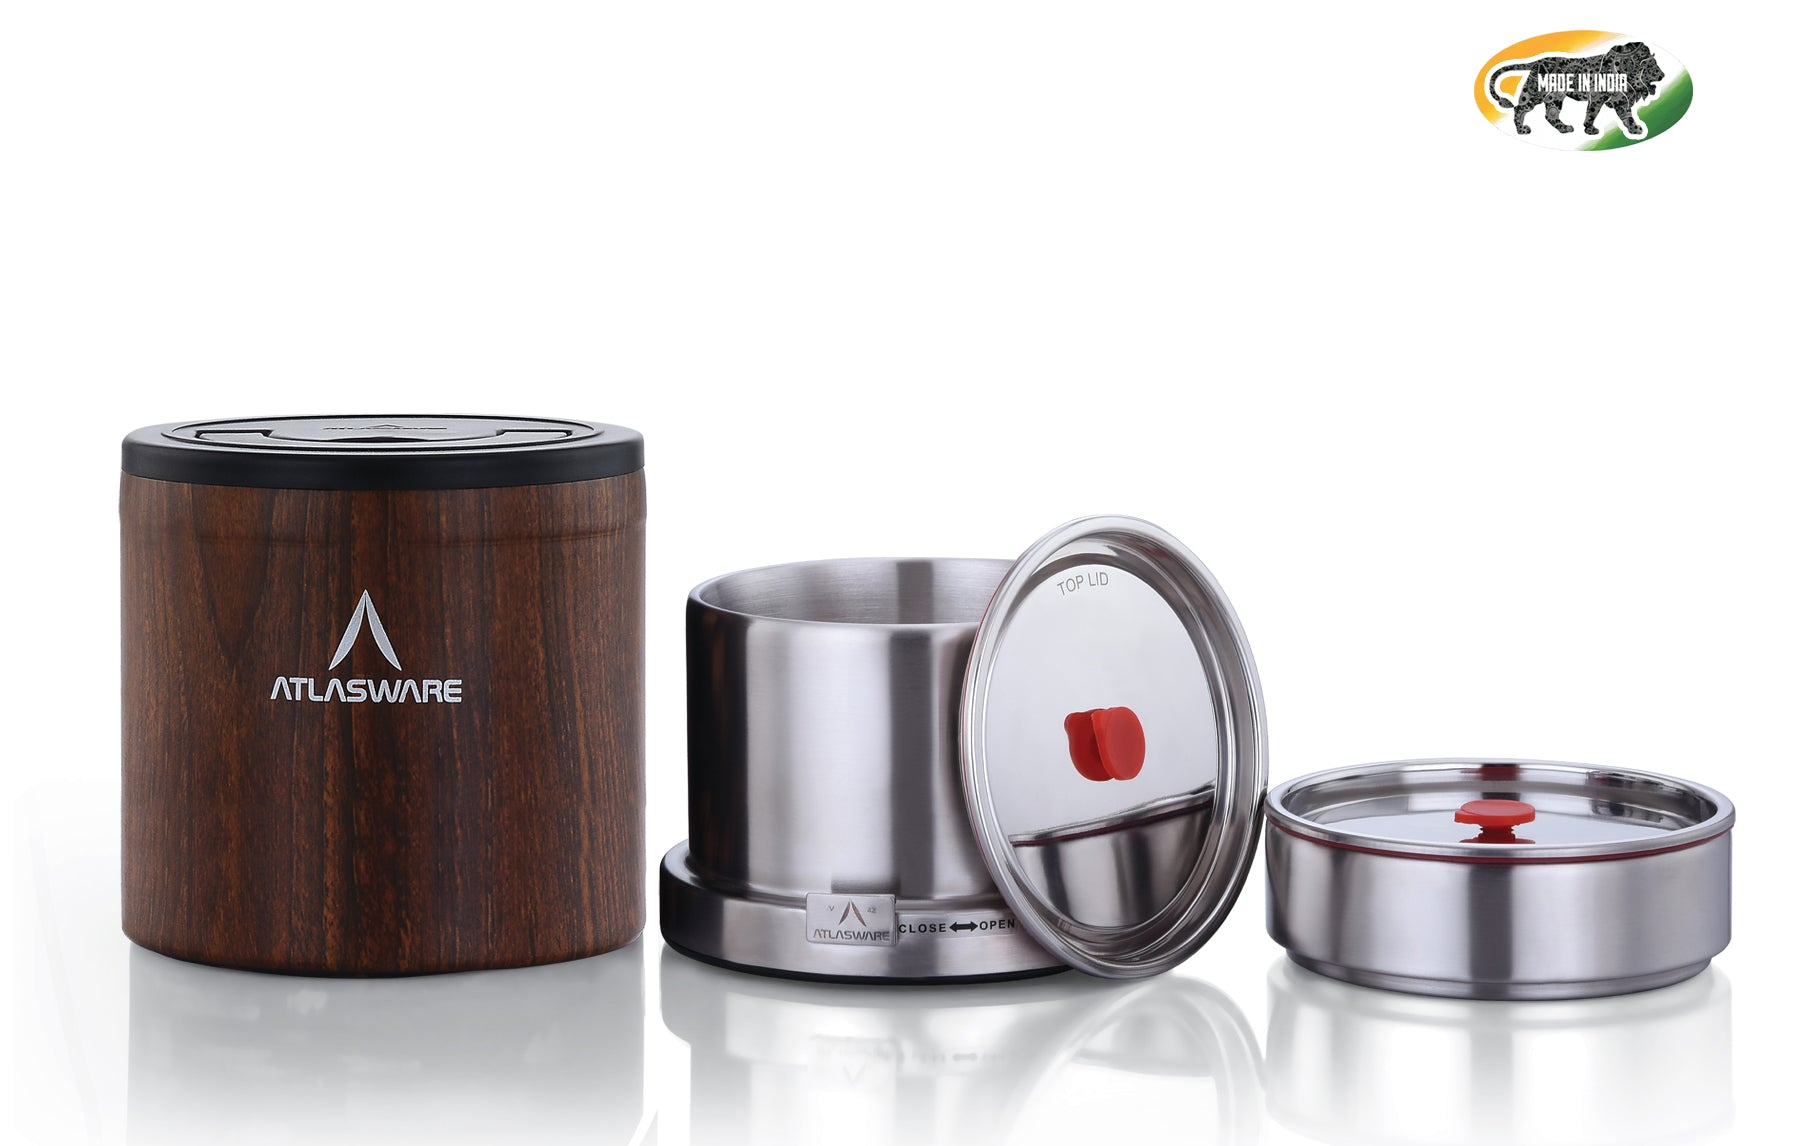 Atlasware Stainless Steel Wood Finish Lunch box 1000ml (3 Container)